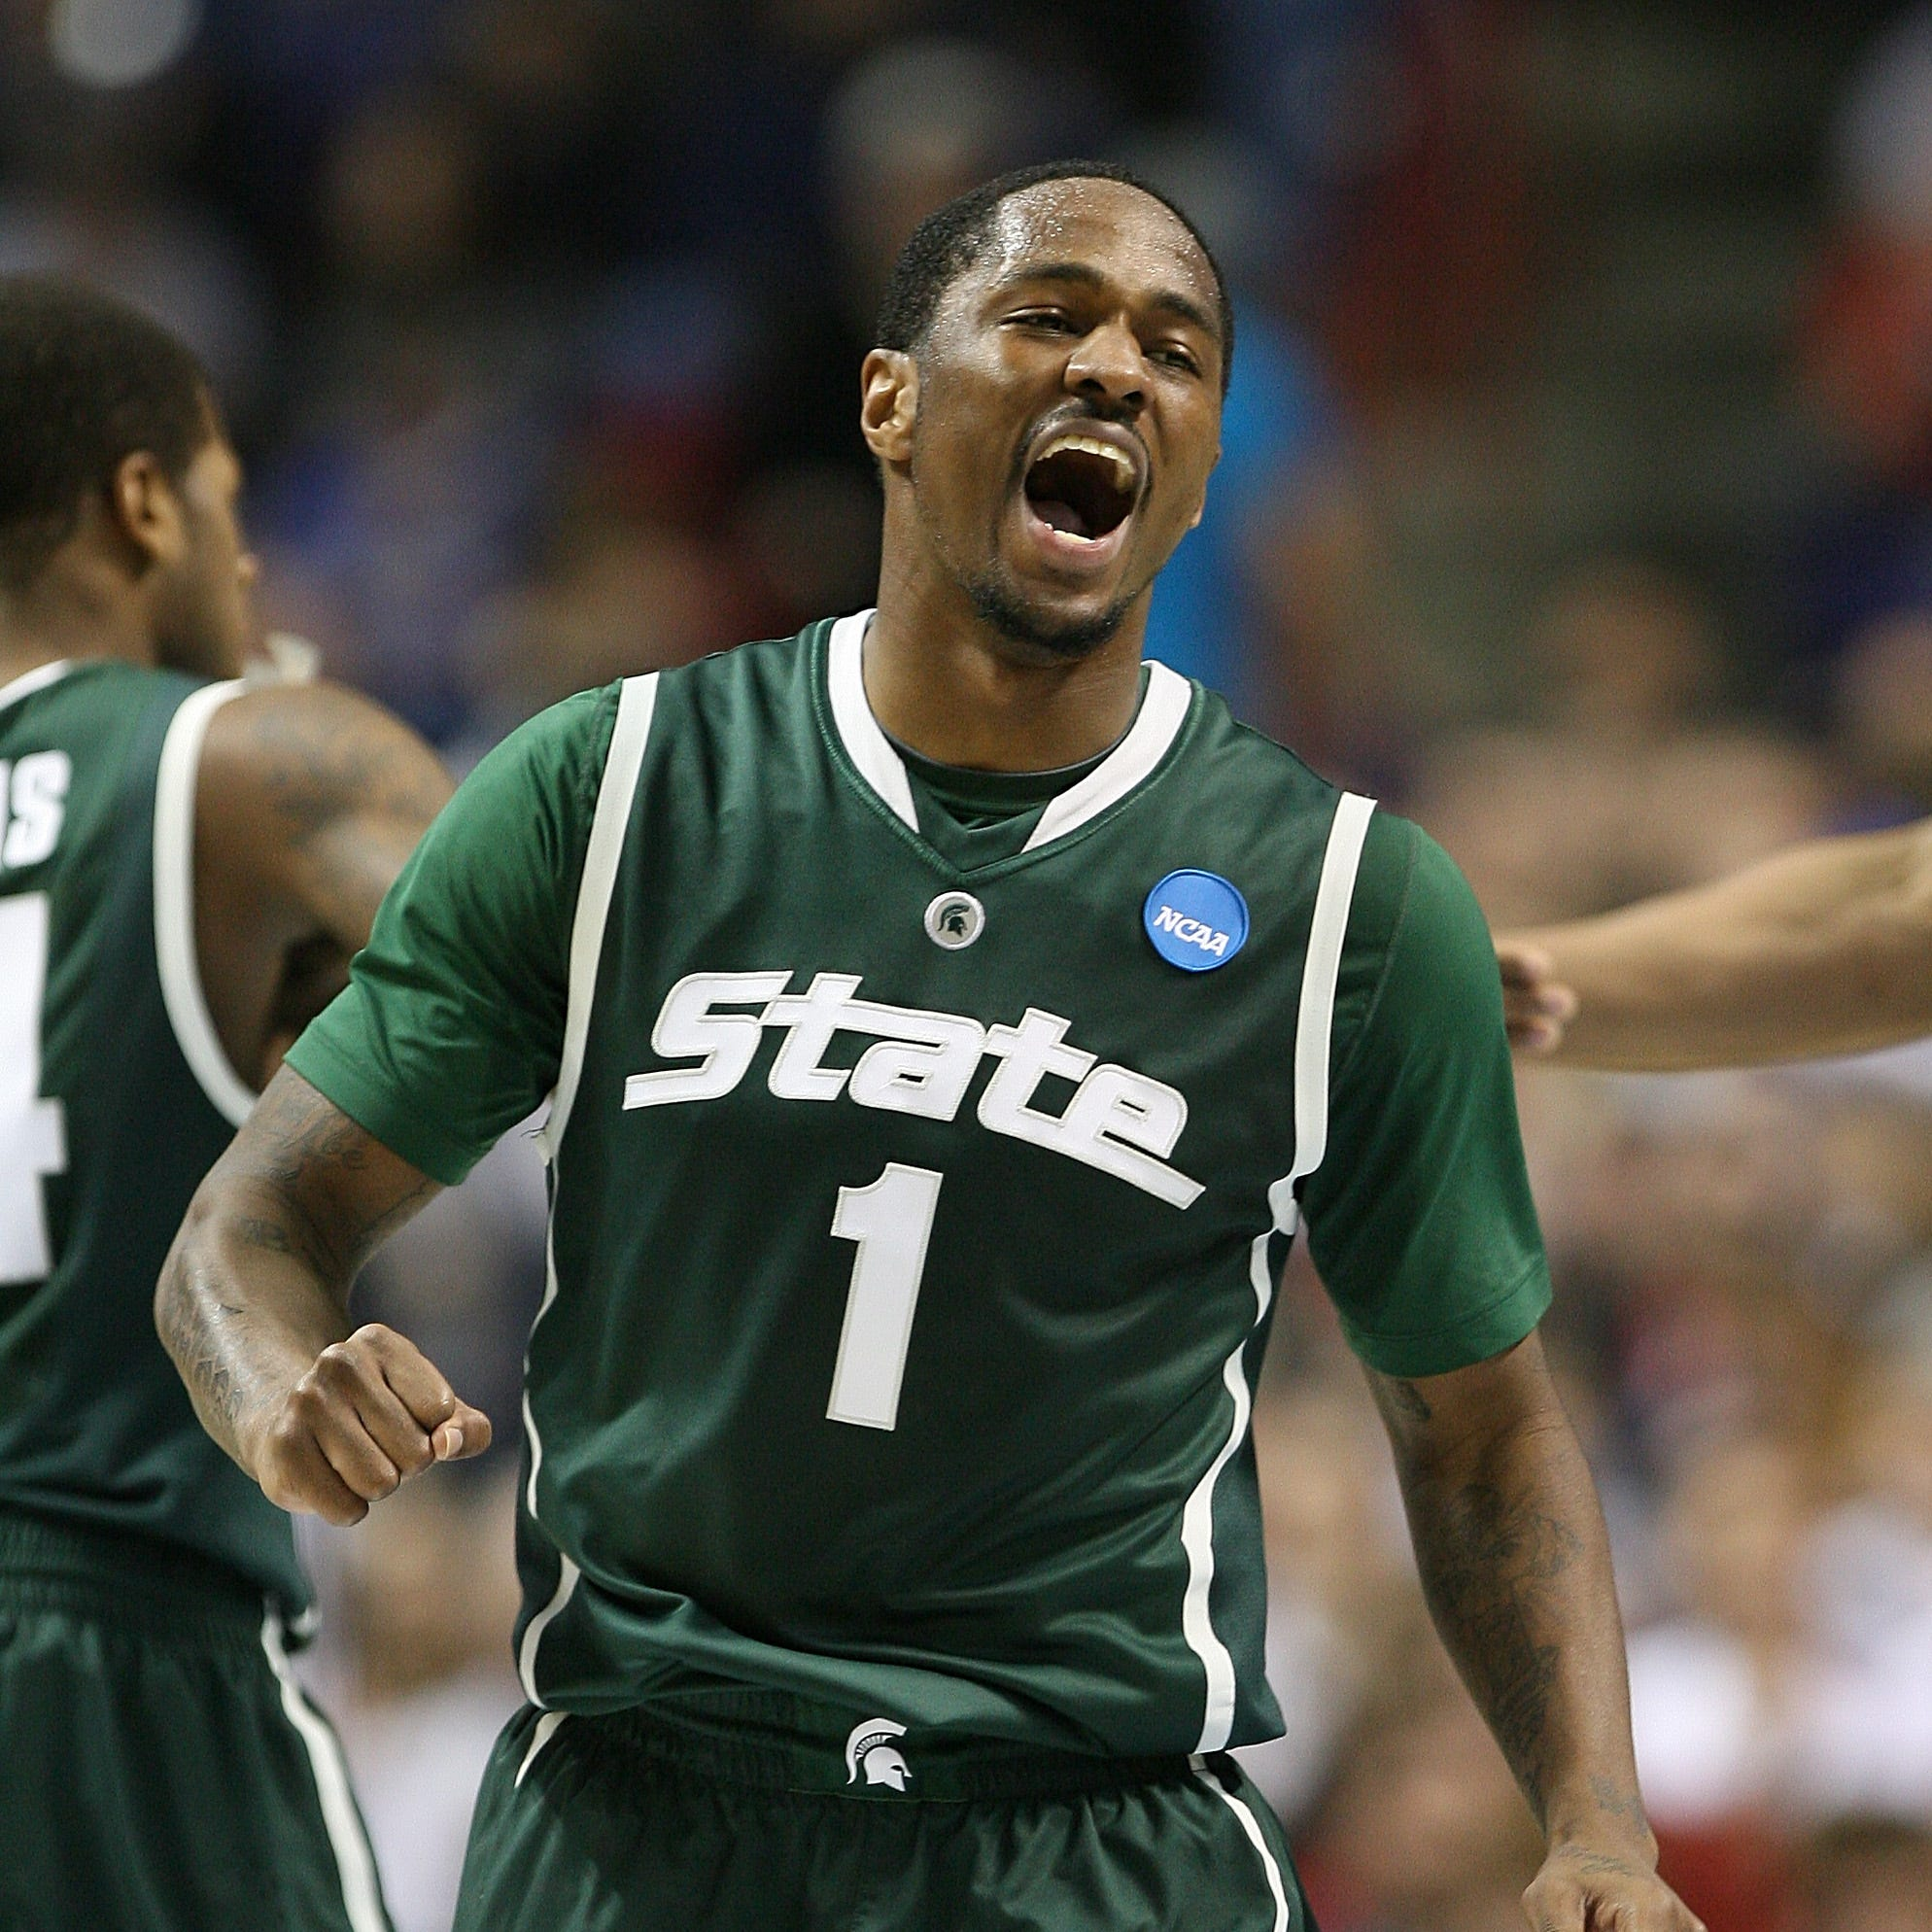 Michigan State basketball is 6-0 in the Big Ten for the fourth time in program history